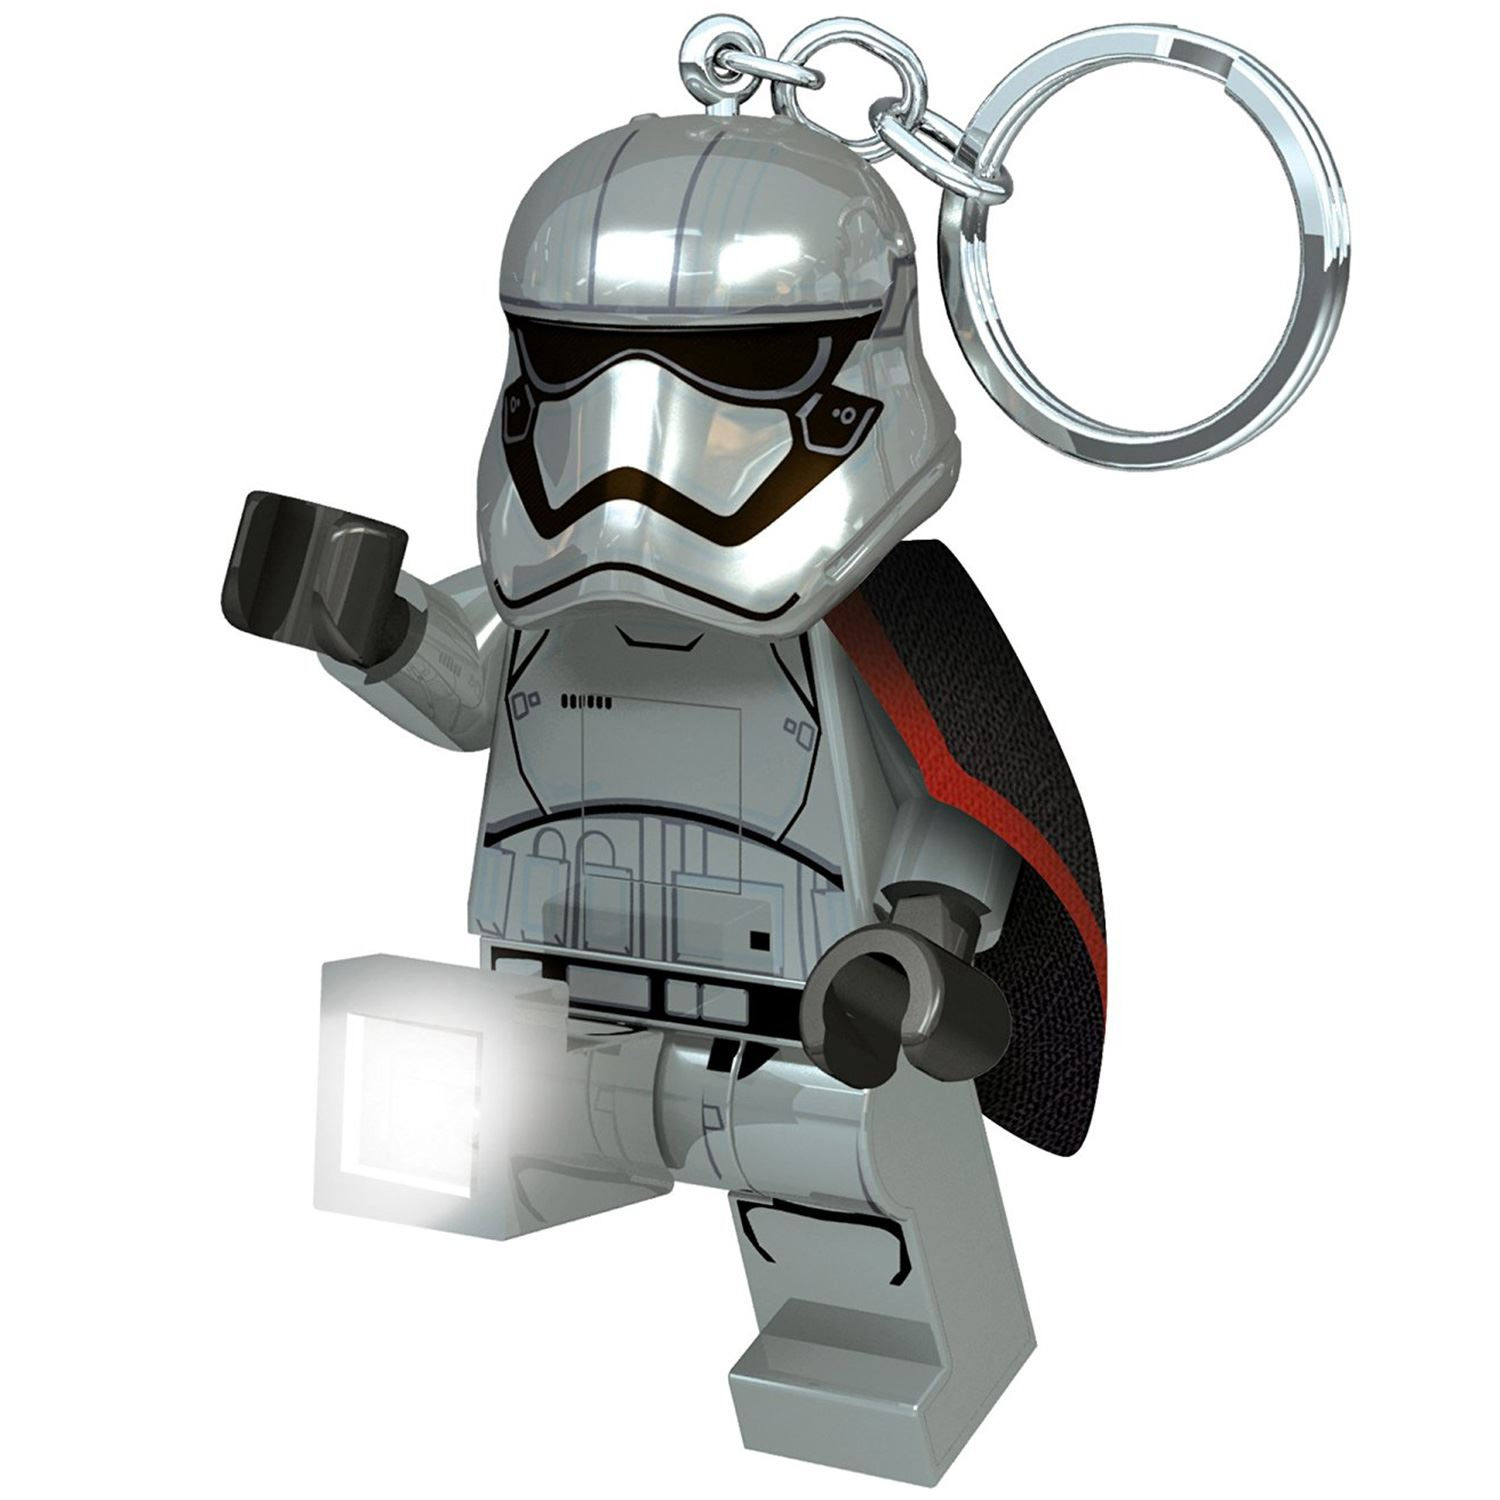 Star Wars Bettwäsche Details About Lego Star Wars Captain Phasma Episode Vii Schlüssellicht Schlüsselring Licht